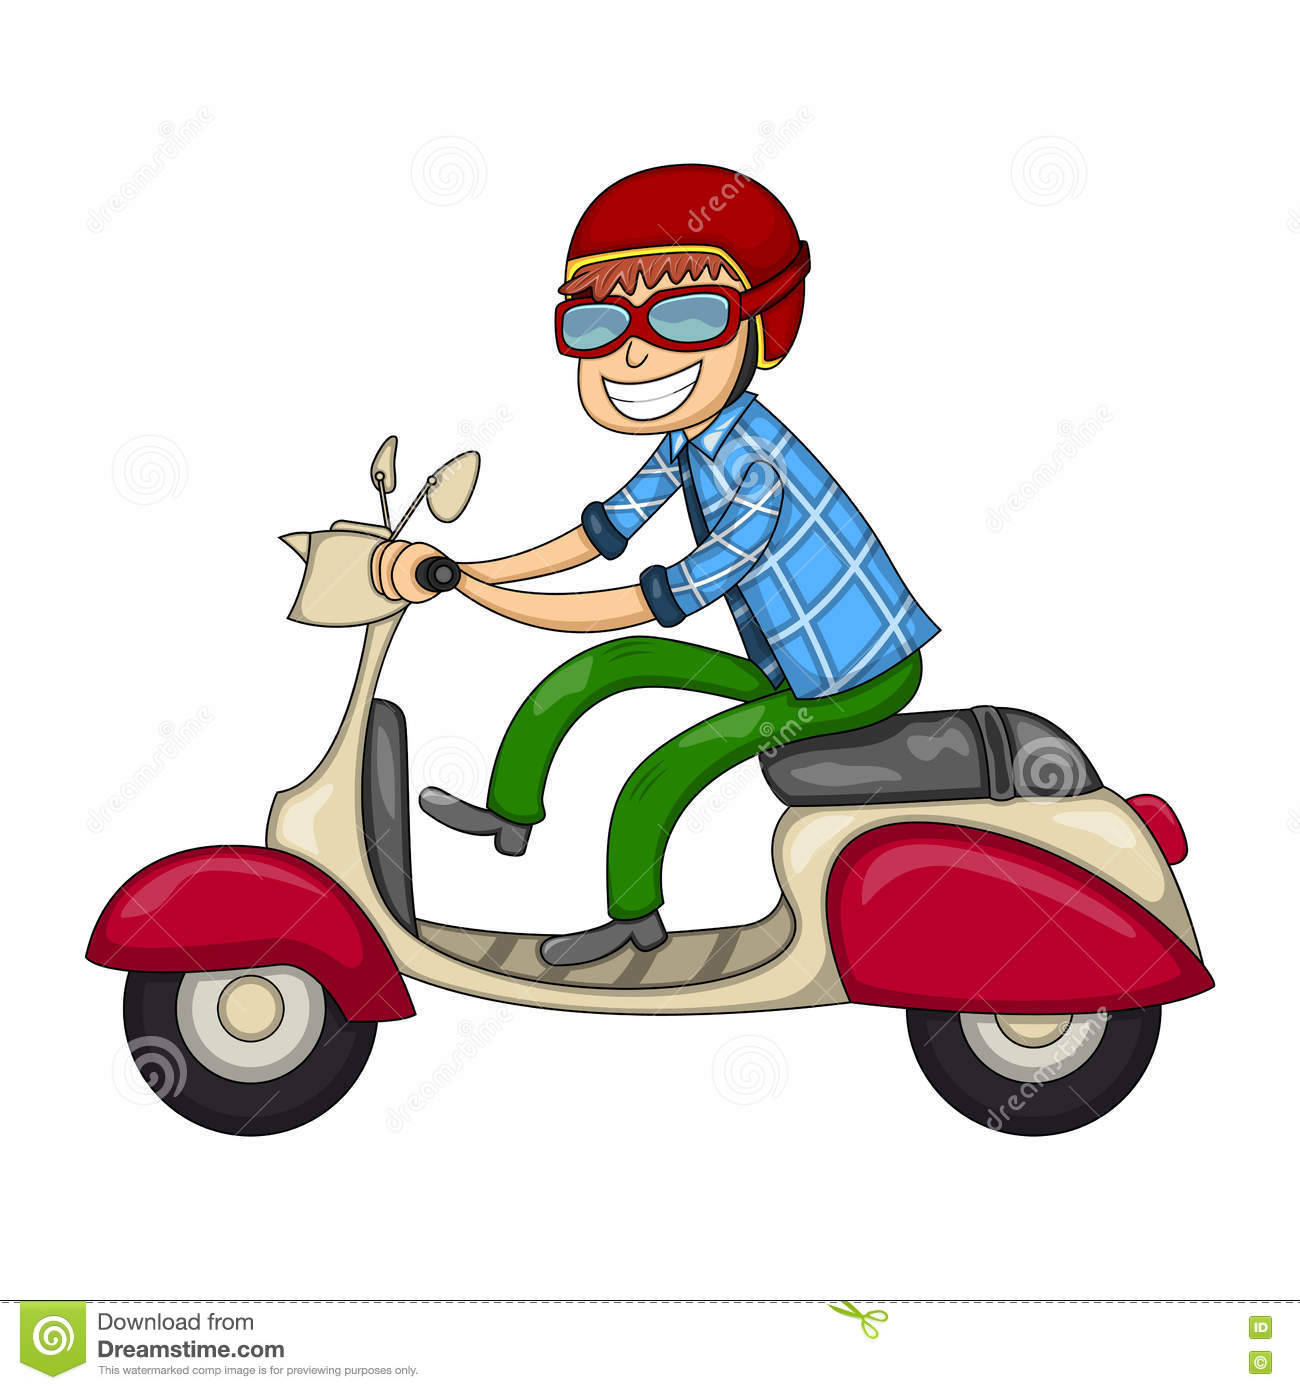 A Man Riding A Scooter Cartoon Stock Vector - Illustration of nostalgia,  classic: 72858498